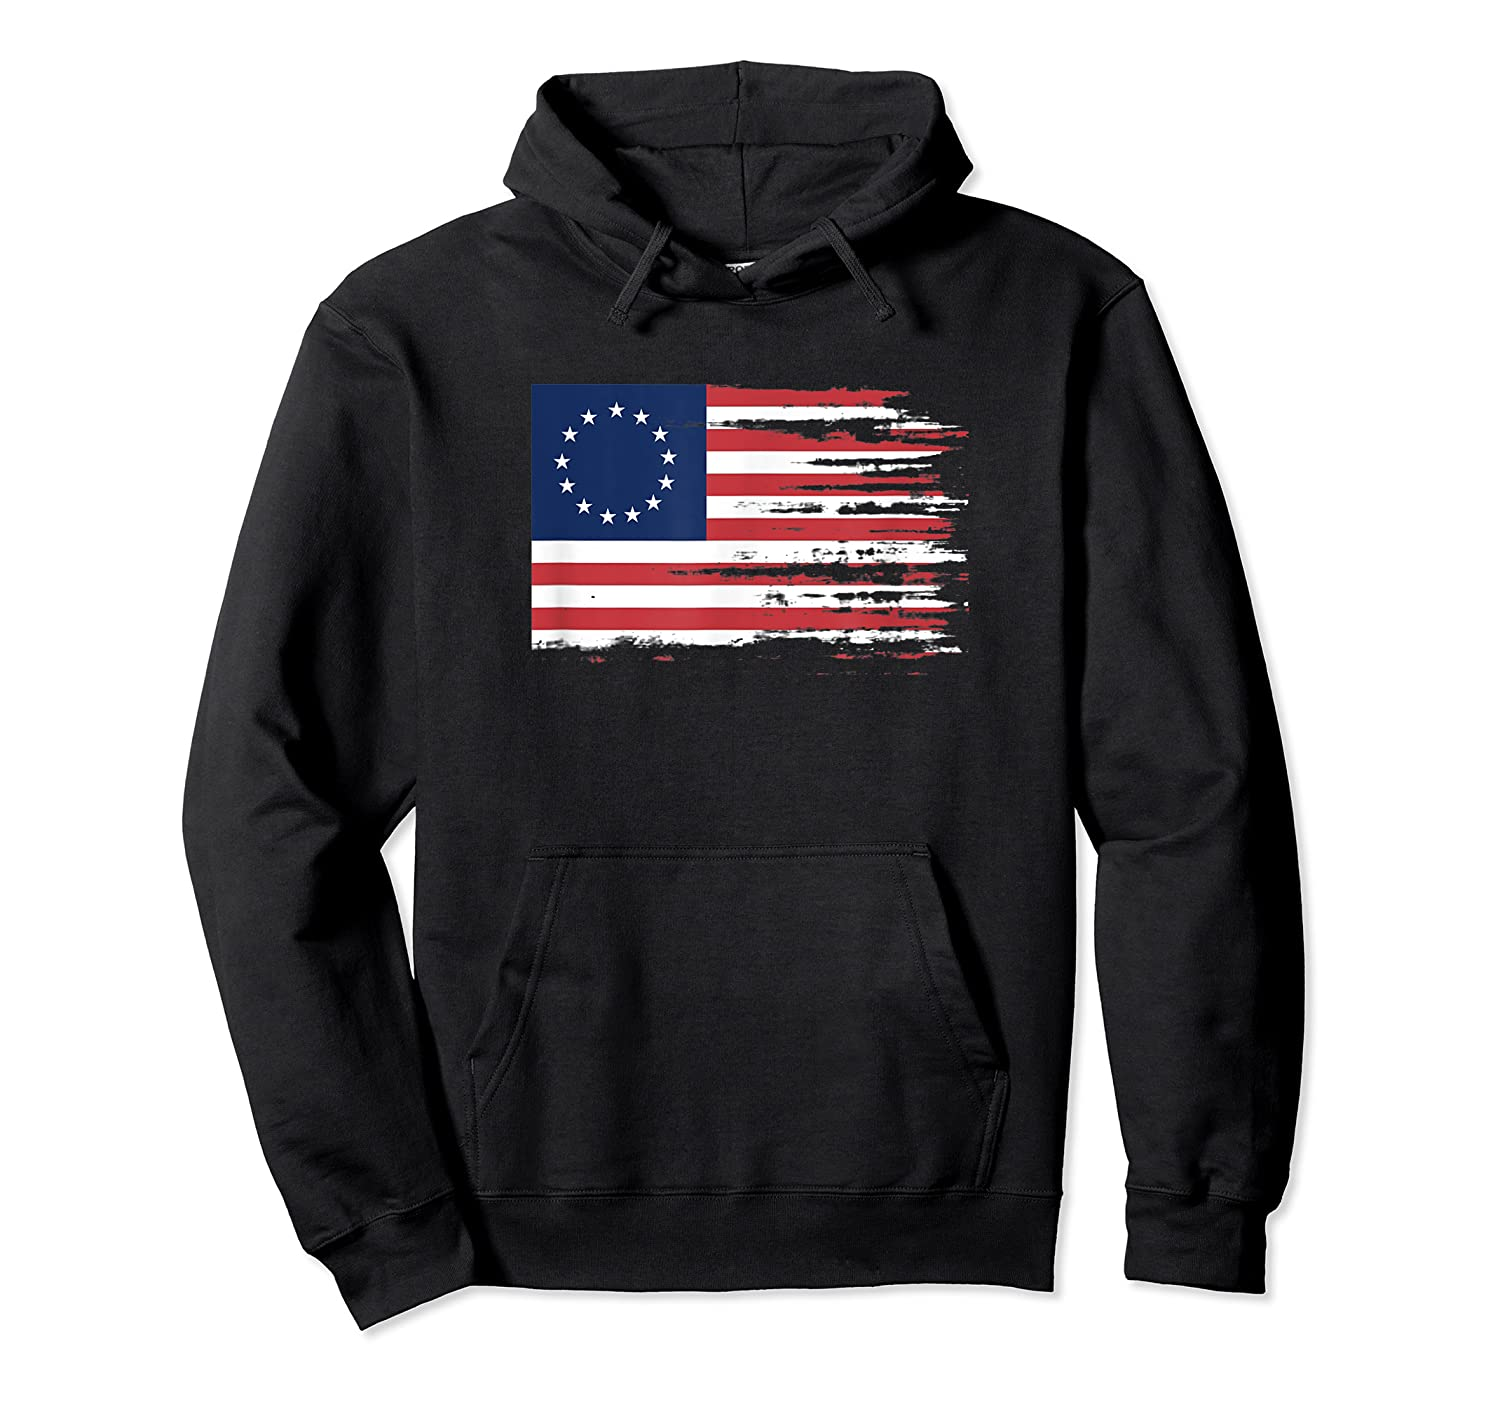 4th Of July Patriotic Betsy Ross Battle Flag 13 Colonies T Shirt Unisex Pullover Hoodie